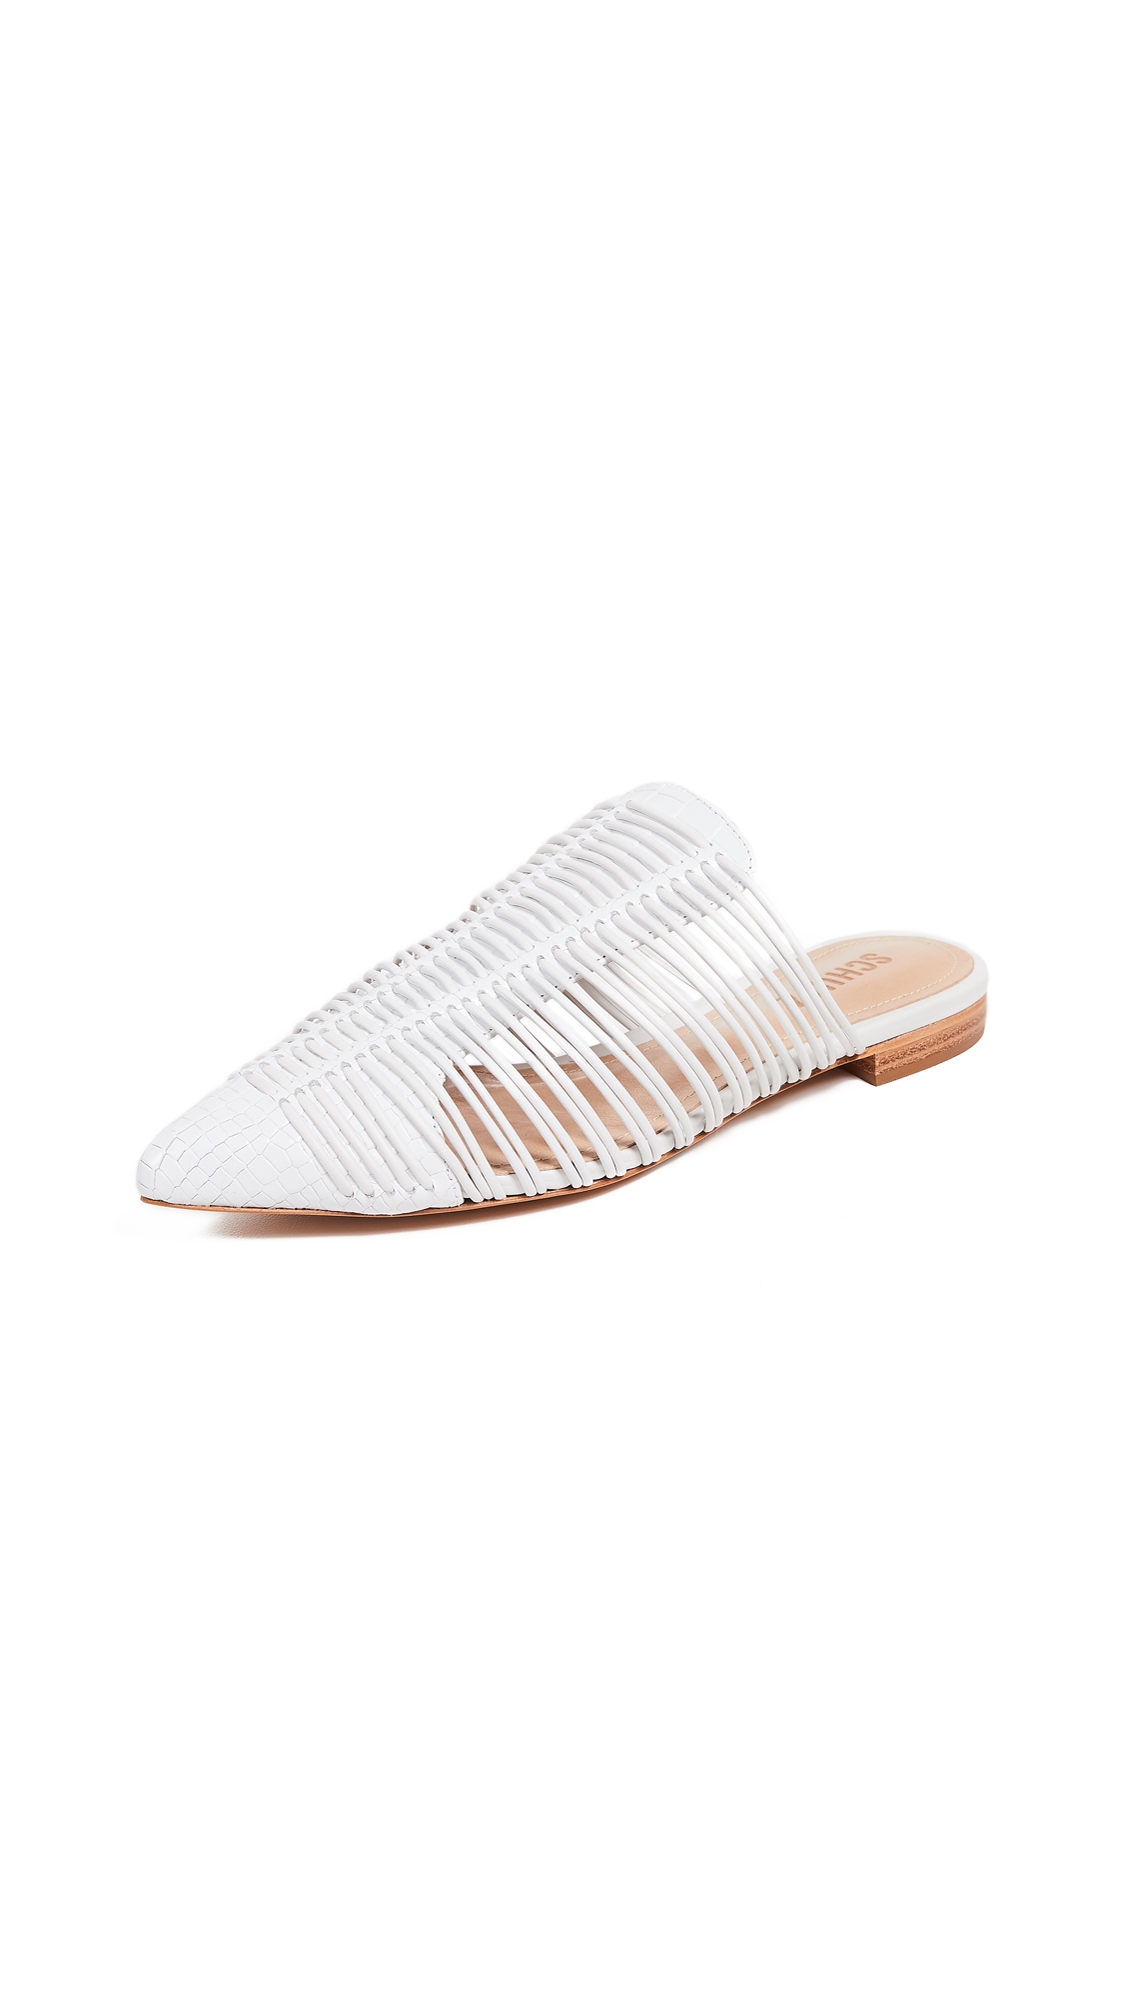 Schutz Rosalyn Point Toe Mules In White